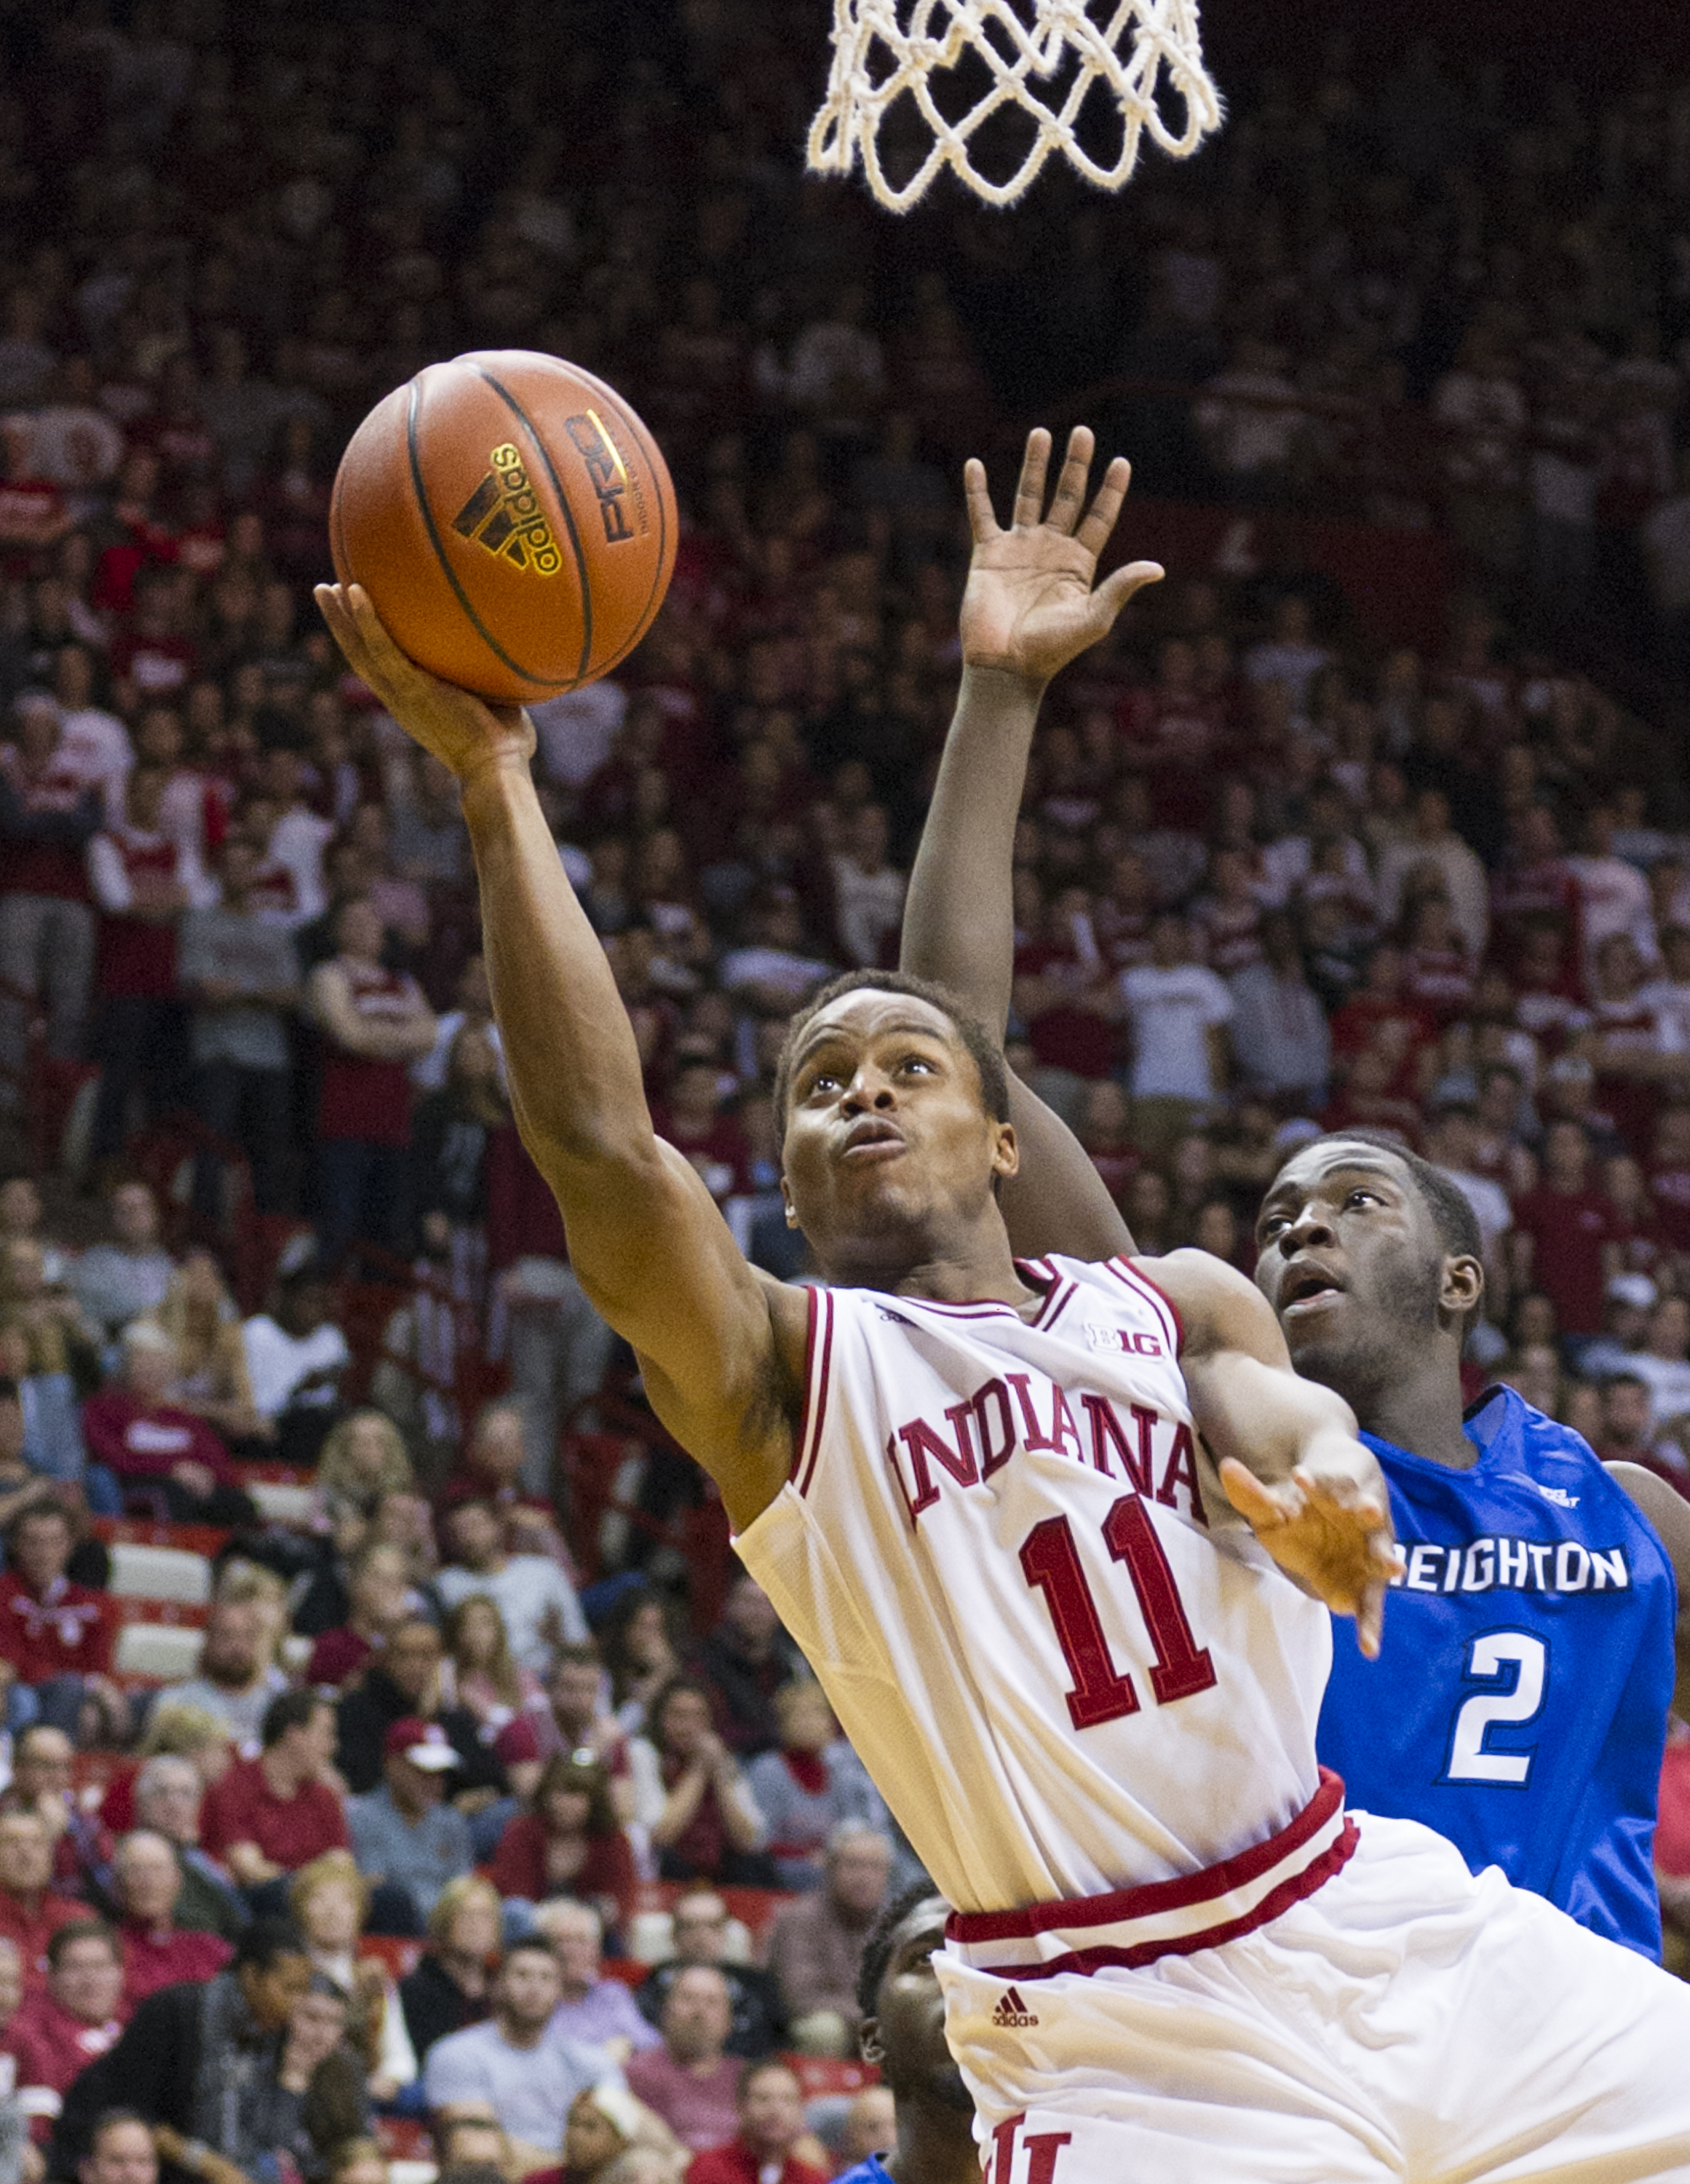 Indiana guard Yogi Ferrell (11) puts up a shot as he's defended by Creighton guard Khyri Thomas (2) during the second half of an NCAA college basketball game, Thursday, Nov. 19, 2015, in Bloomington, Ind. Indiana won 86-65. (AP Photo/Doug McSchooler)